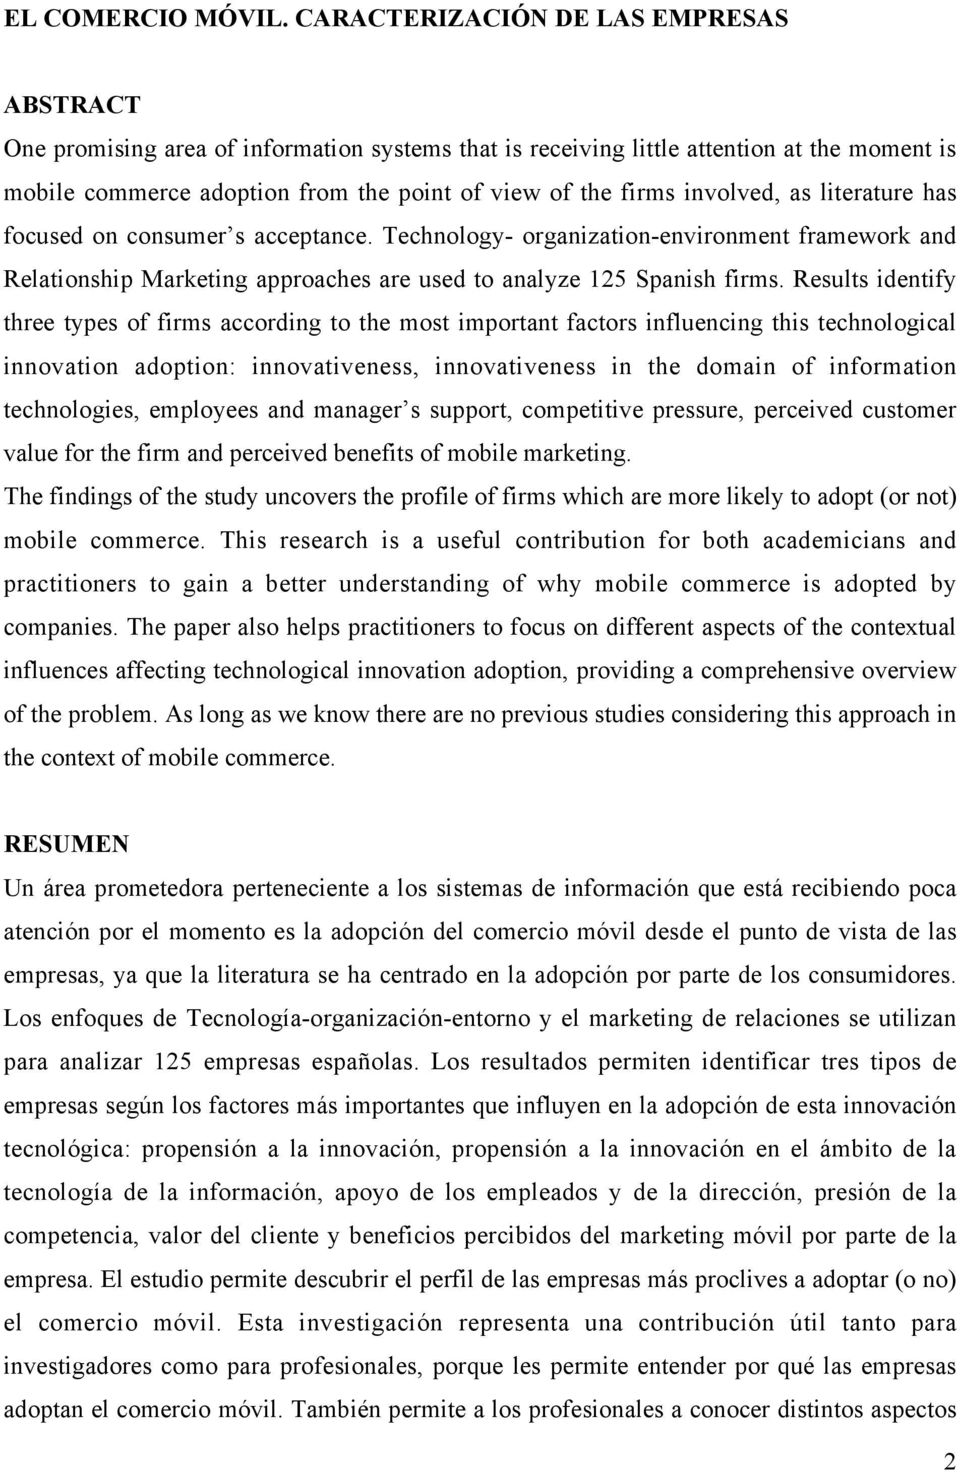 involved, as literature has focused on consumer s acceptance. Technology- organization-environment framework and Relationship Marketing approaches are used to analyze 125 Spanish firms.